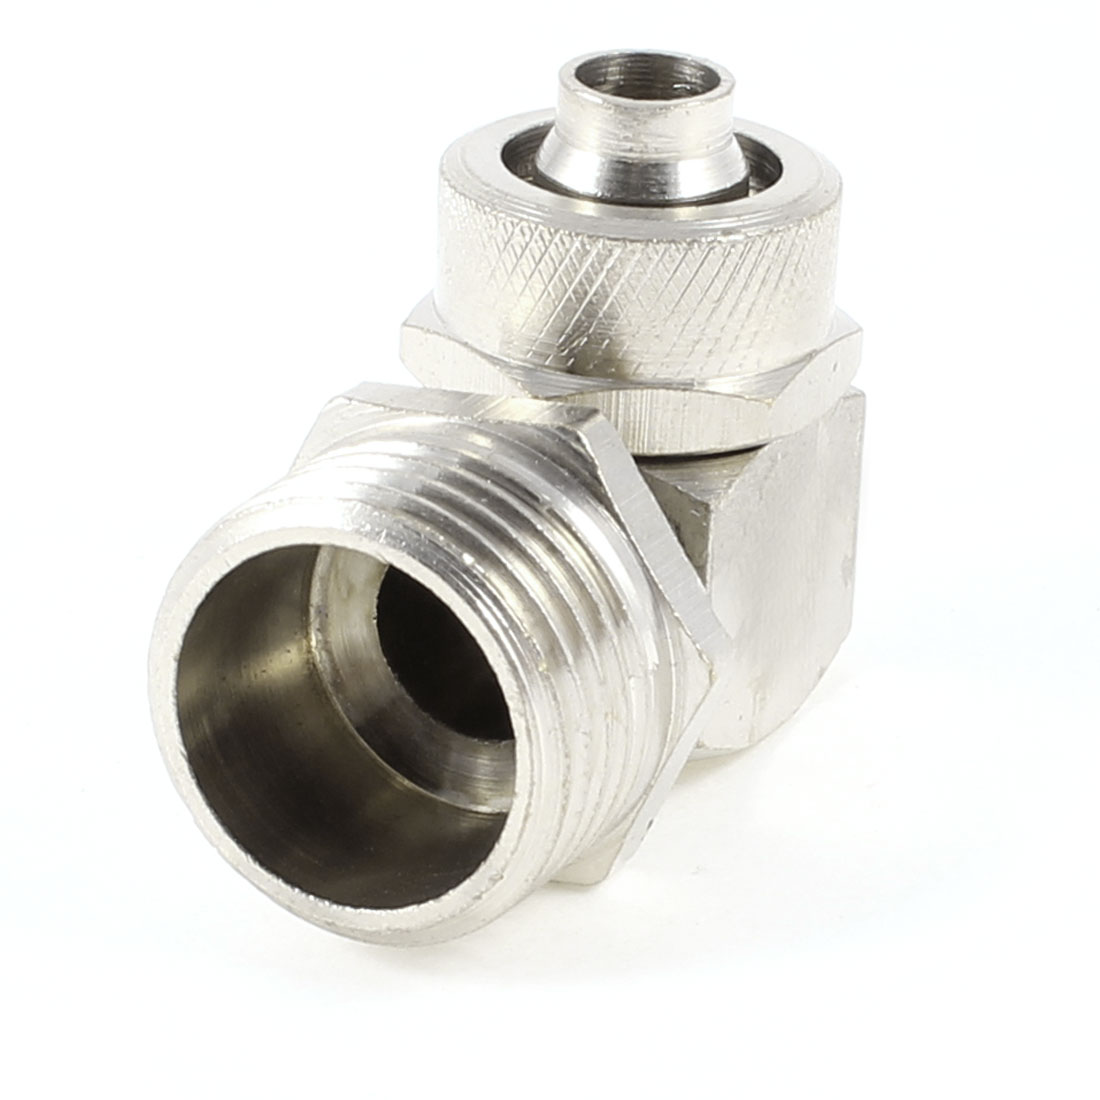 20mm Male Thread Right Angle Quick Adapter Connector for 7.5mmx12mm Air Hose